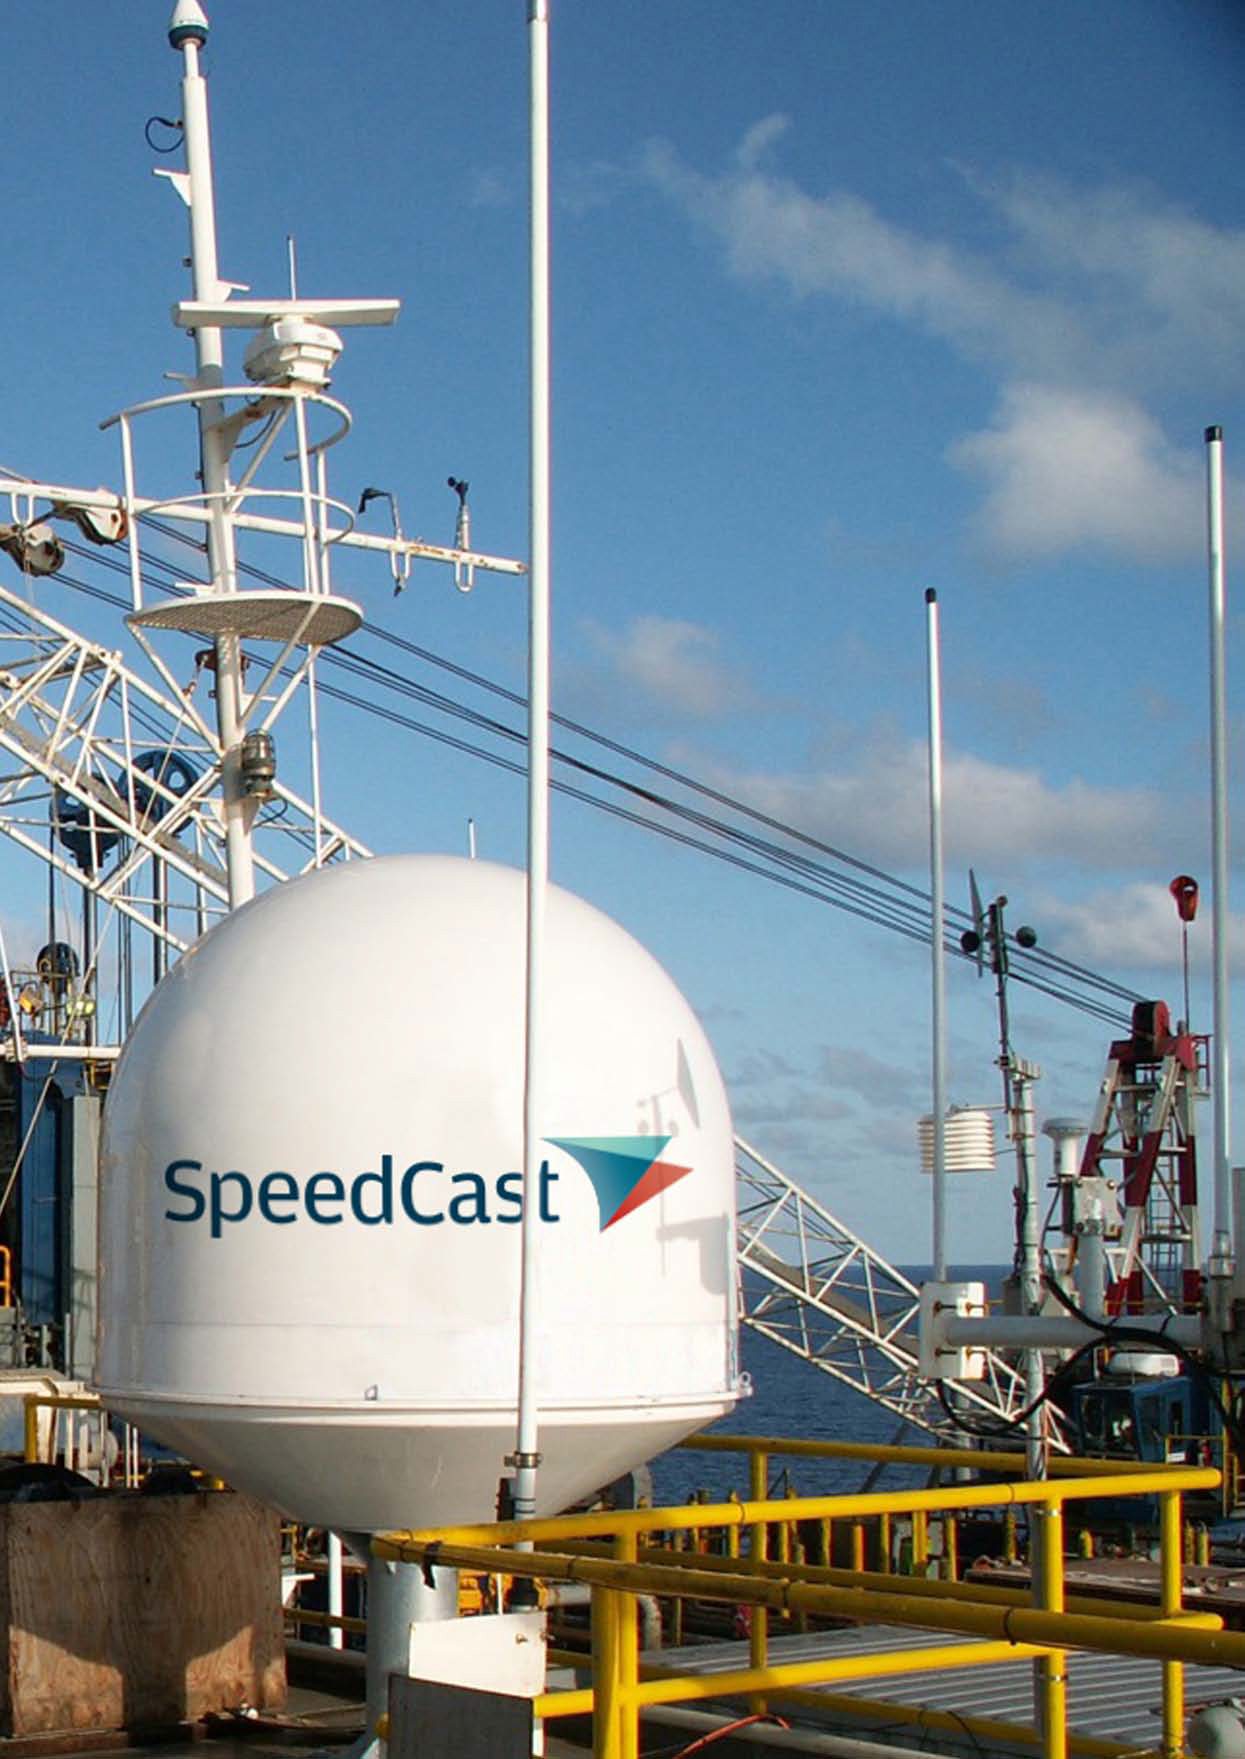 Q&A with Pierre-Jean Beylier, Chief Executive of SpeedCast